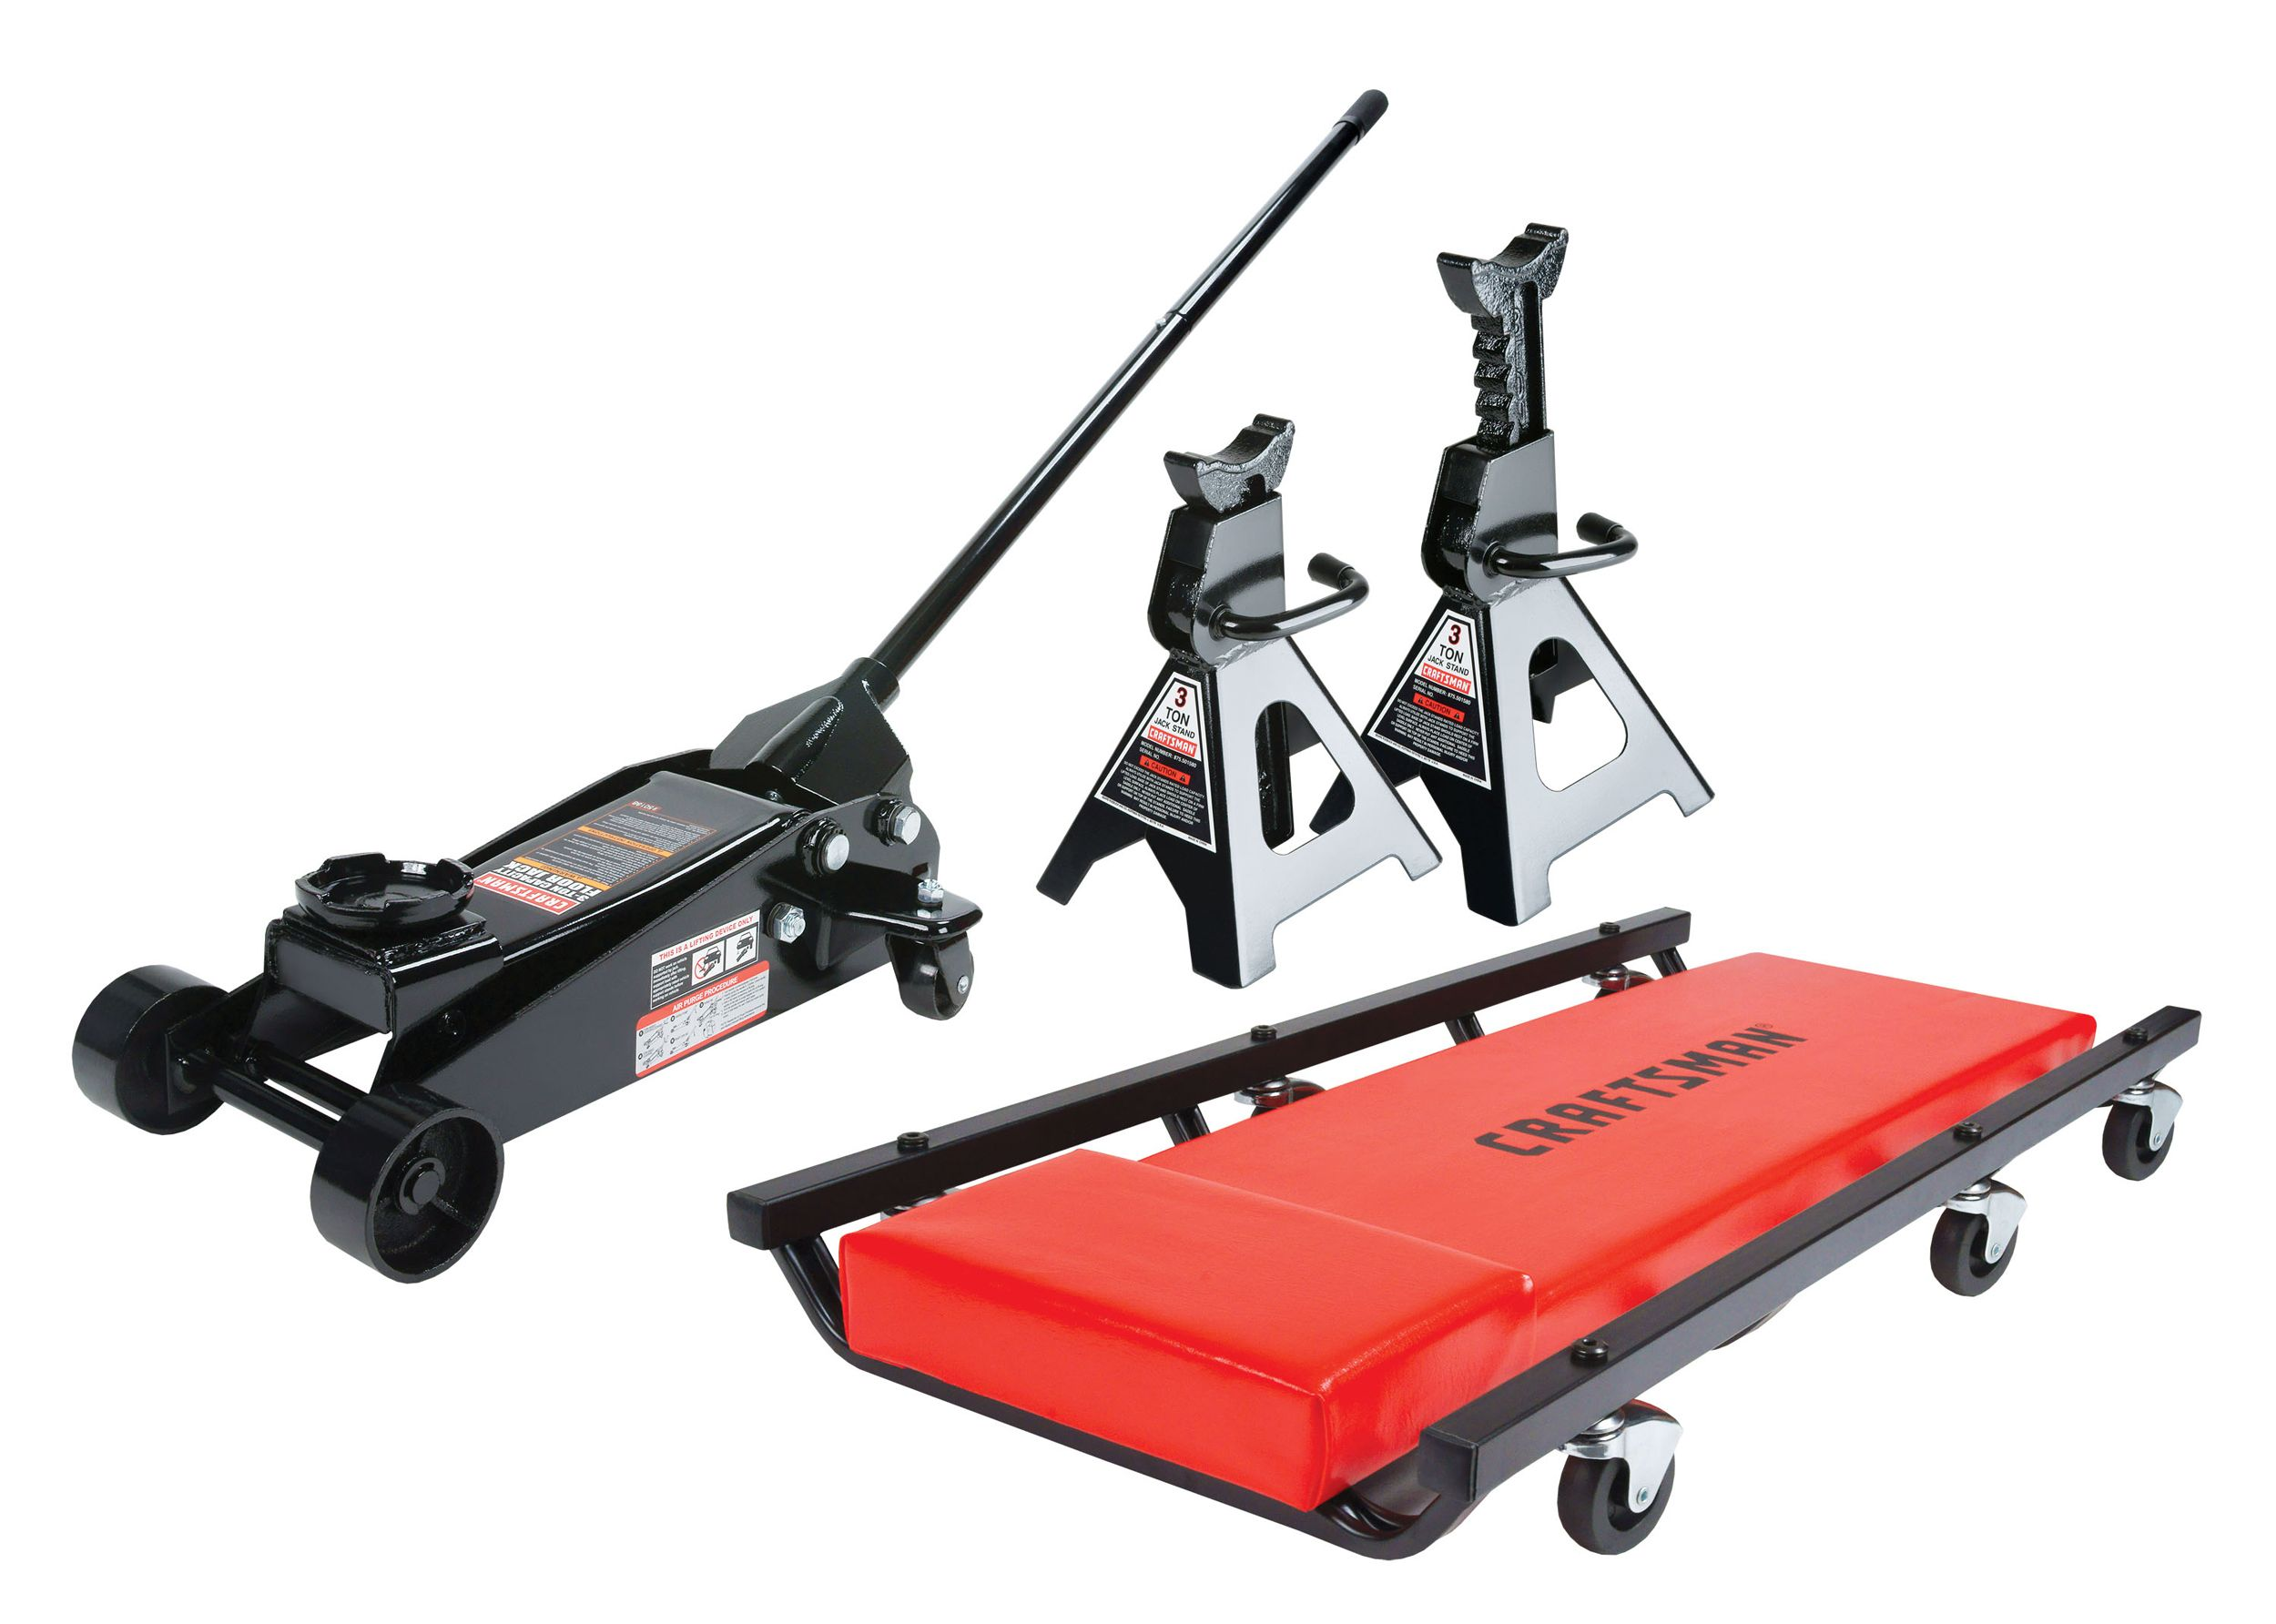 Craftsman 3 Ton Floor Jack With Jack Stands And Creeper Set In 2020 Floor Jack Jack Stands Floor Jacks